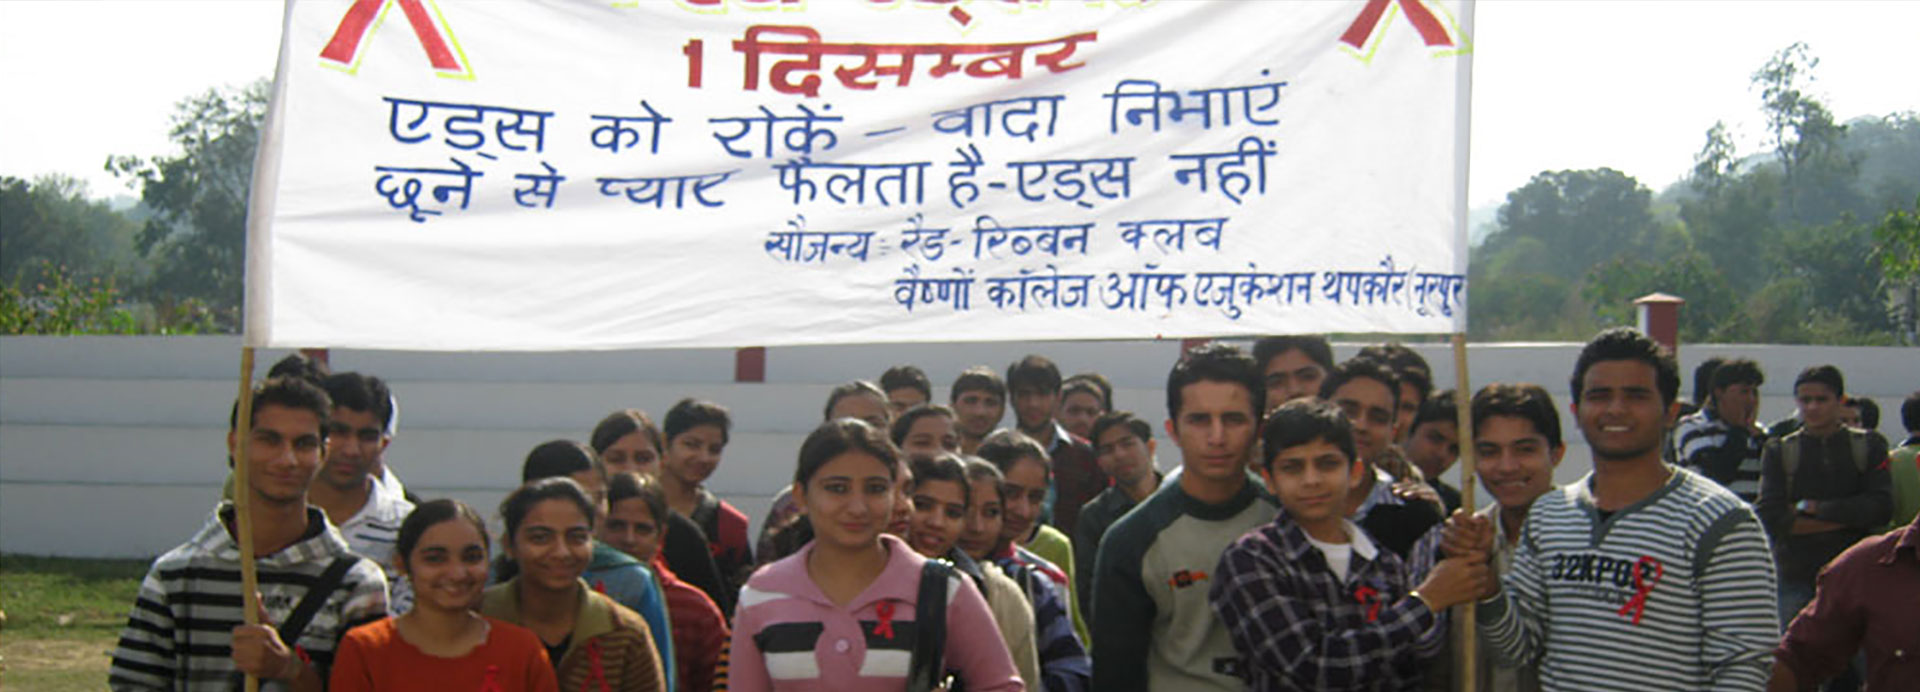 Aids Day Campaign